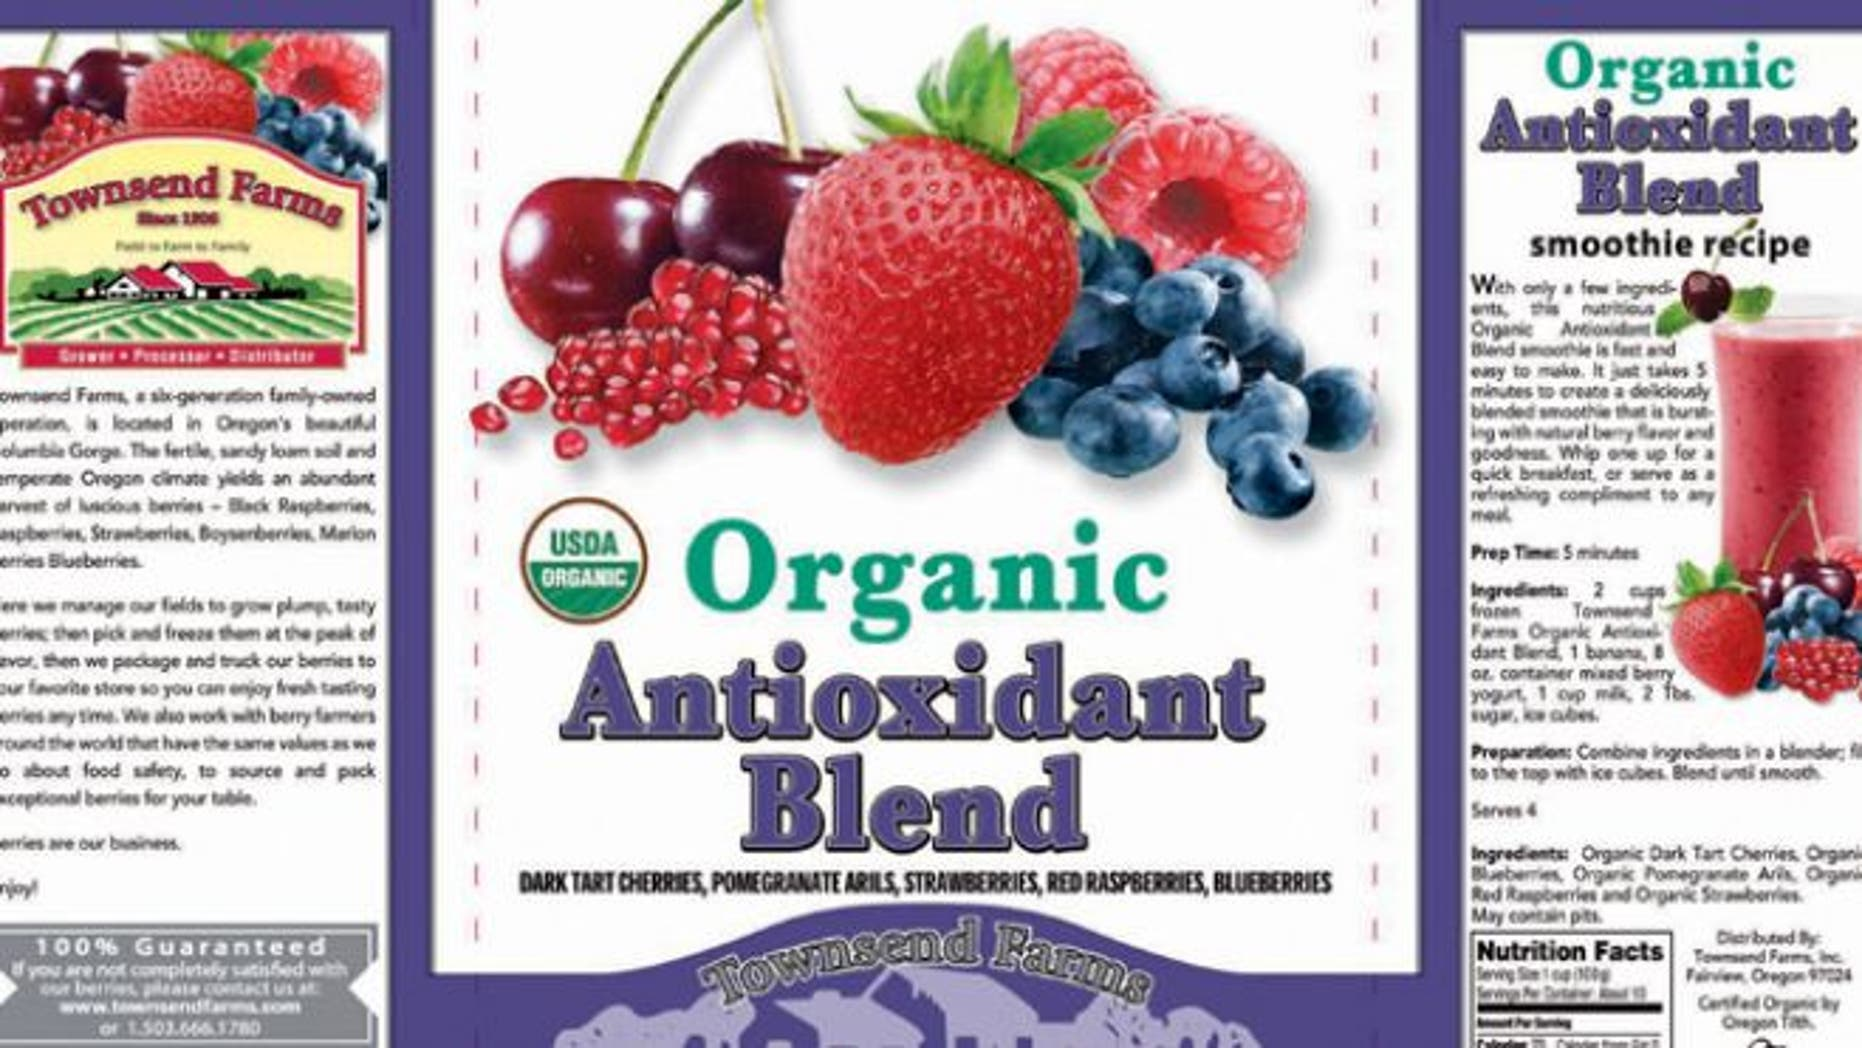 The label of Townsend Farms of Fairview, Ore., Organic Antioxidant Blend, packaged under the Townsend Farms label at Costco and under the Harris Teeter brand at those stores.